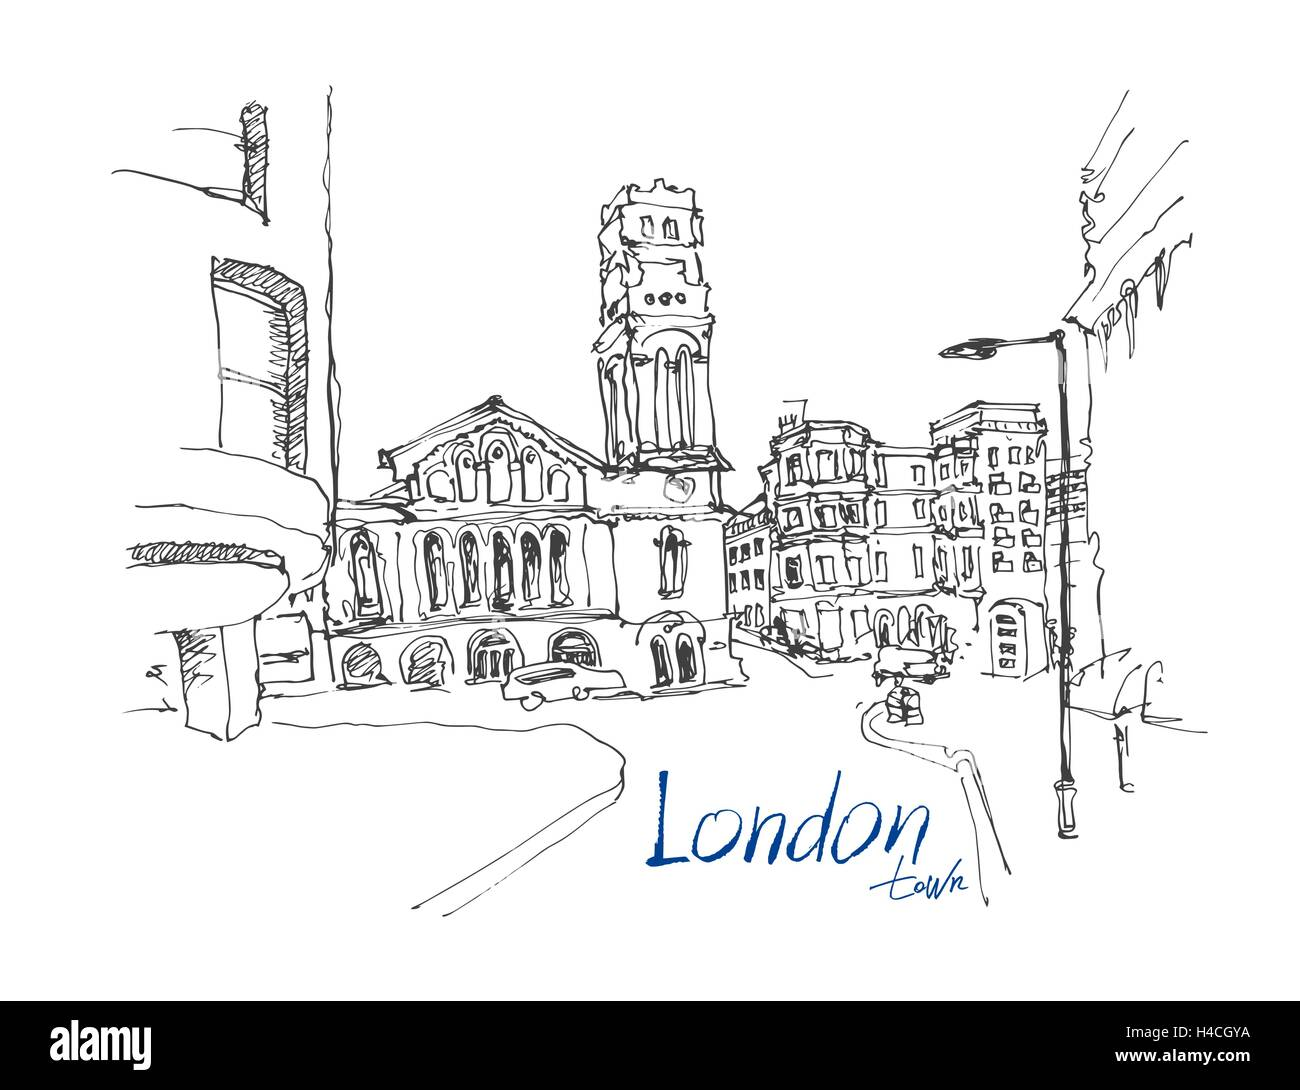 Ink sketch drawing of famous place in london with hand lettering ink sketch drawing of famous place in london with hand lettering altavistaventures Image collections